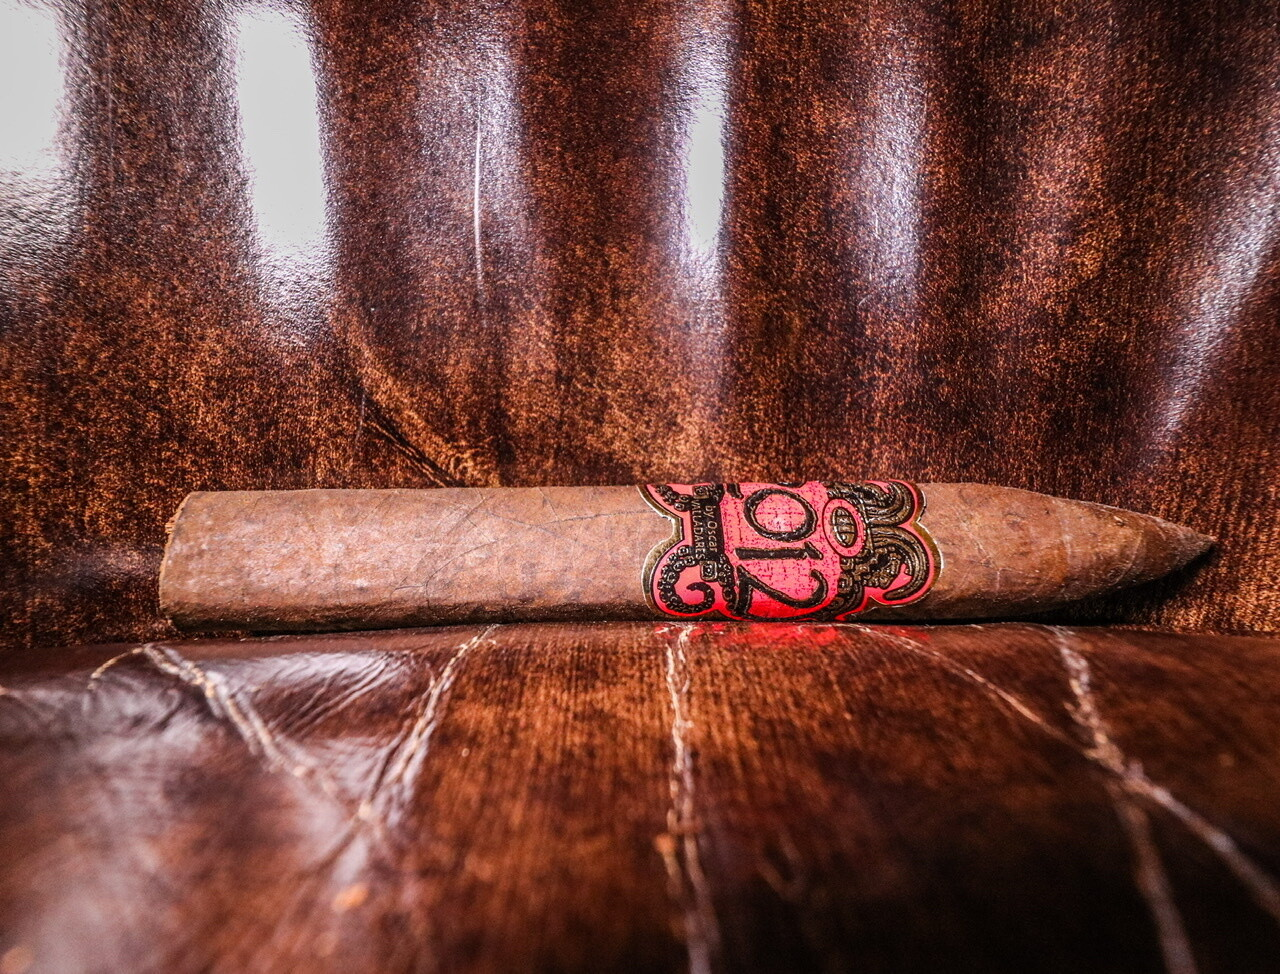 2012 by Oscar RED Maduro Torpedo, 20's